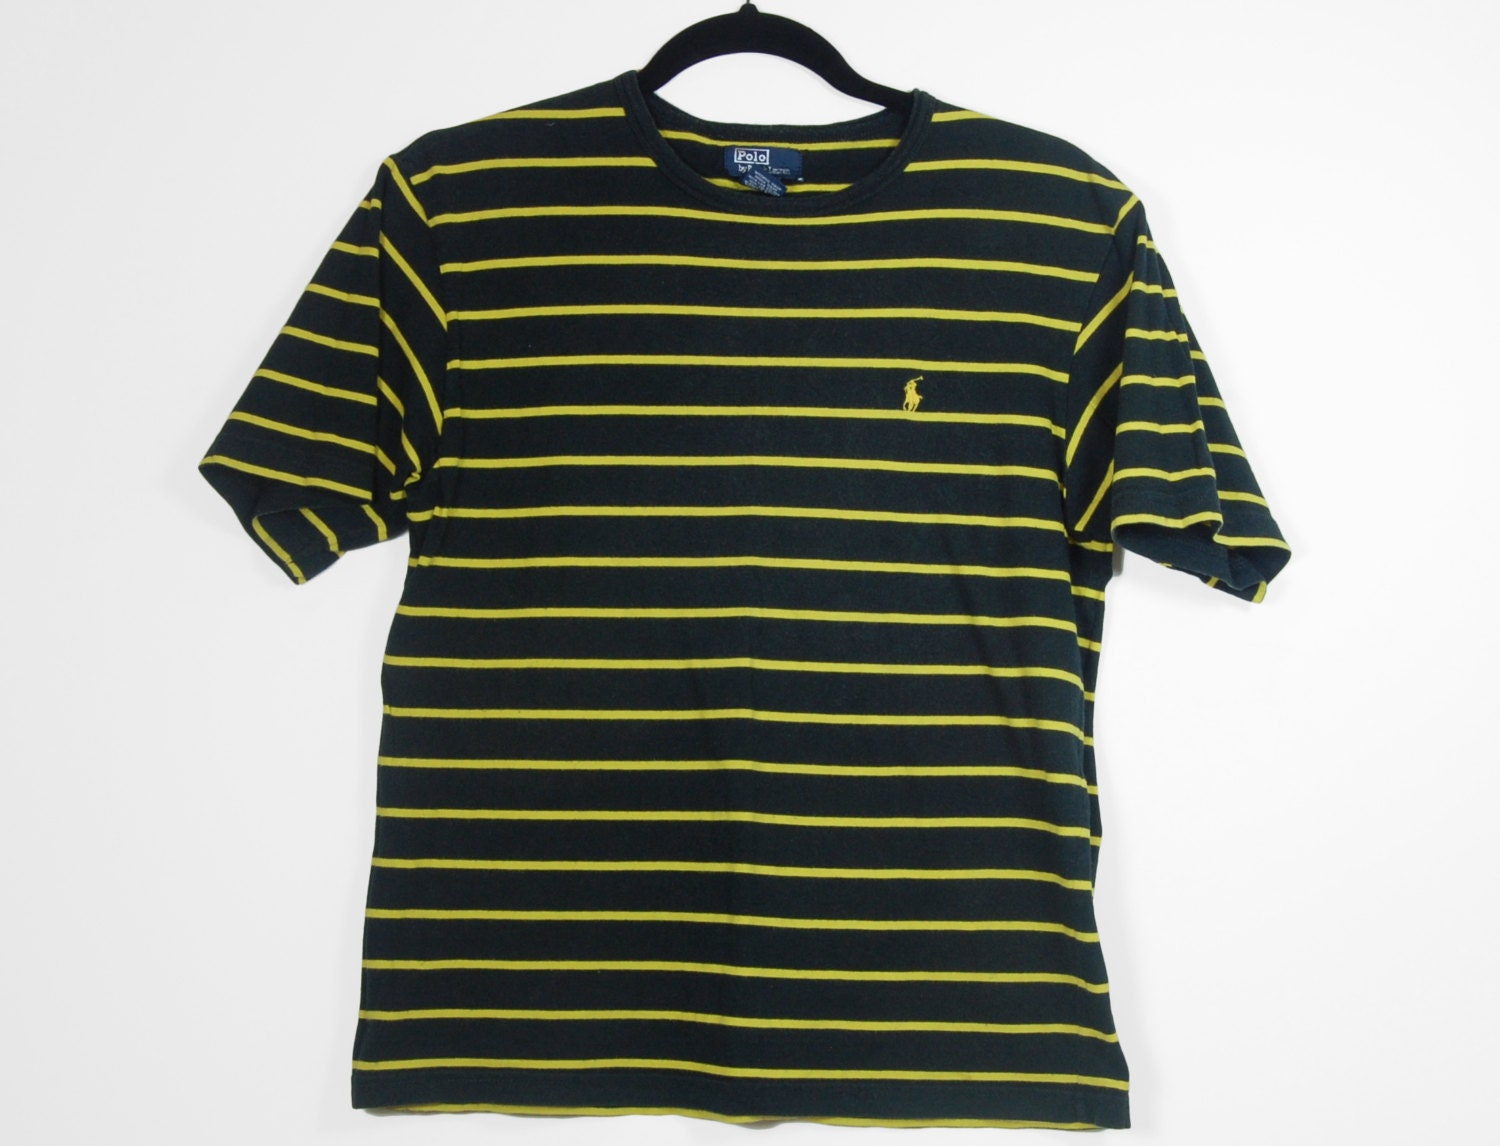 Black and Yellow Striped Polo Shirts